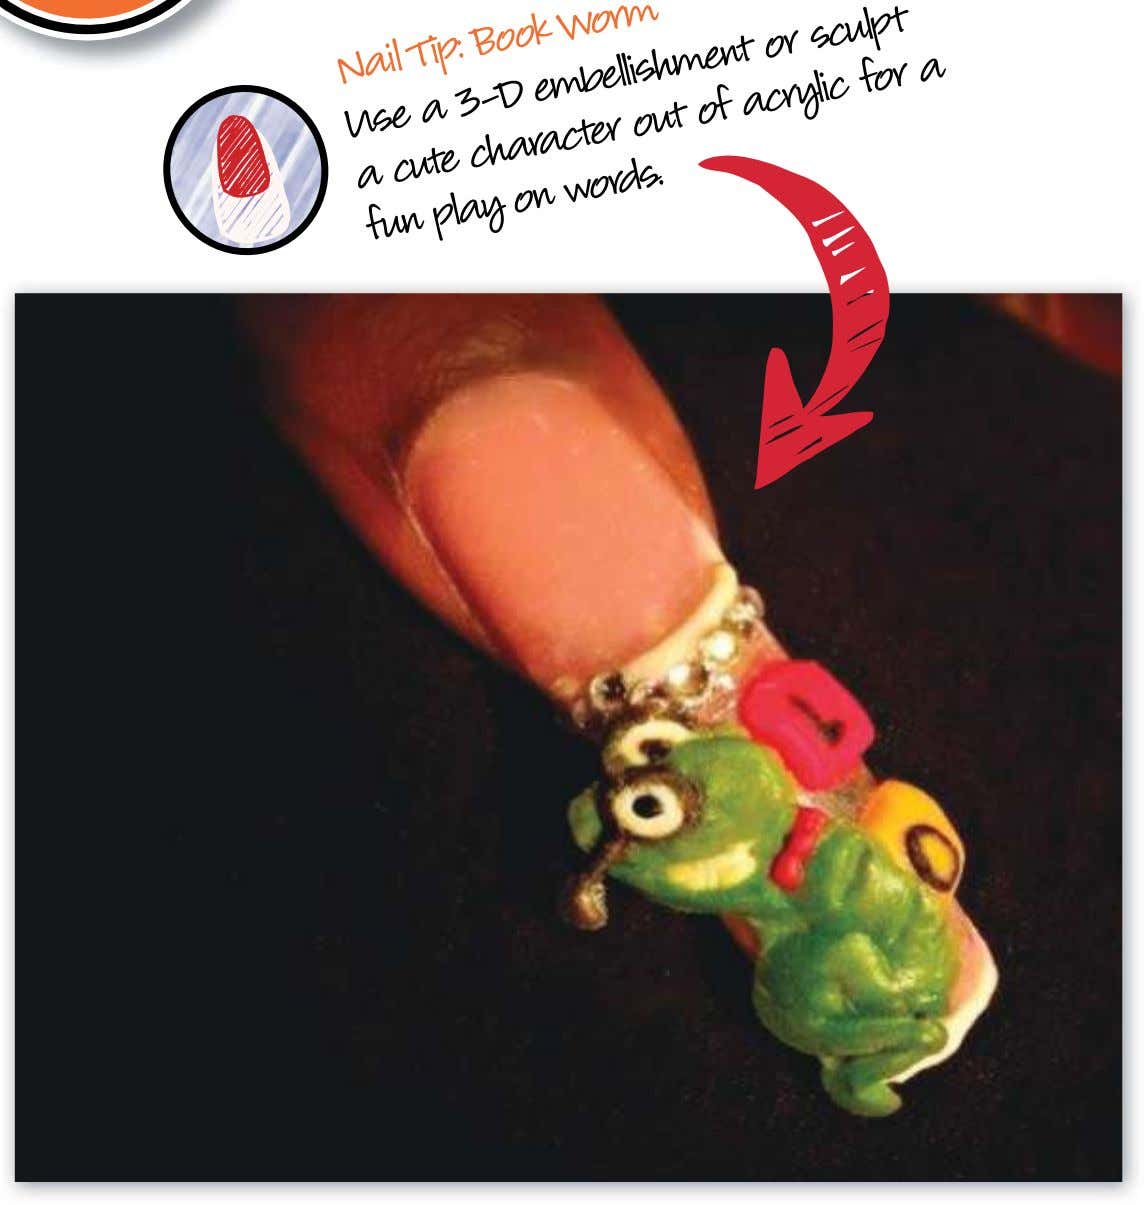 Nail Tip: Book Worm Use a 3-D embellishment or sculpt out of acrylic a fun